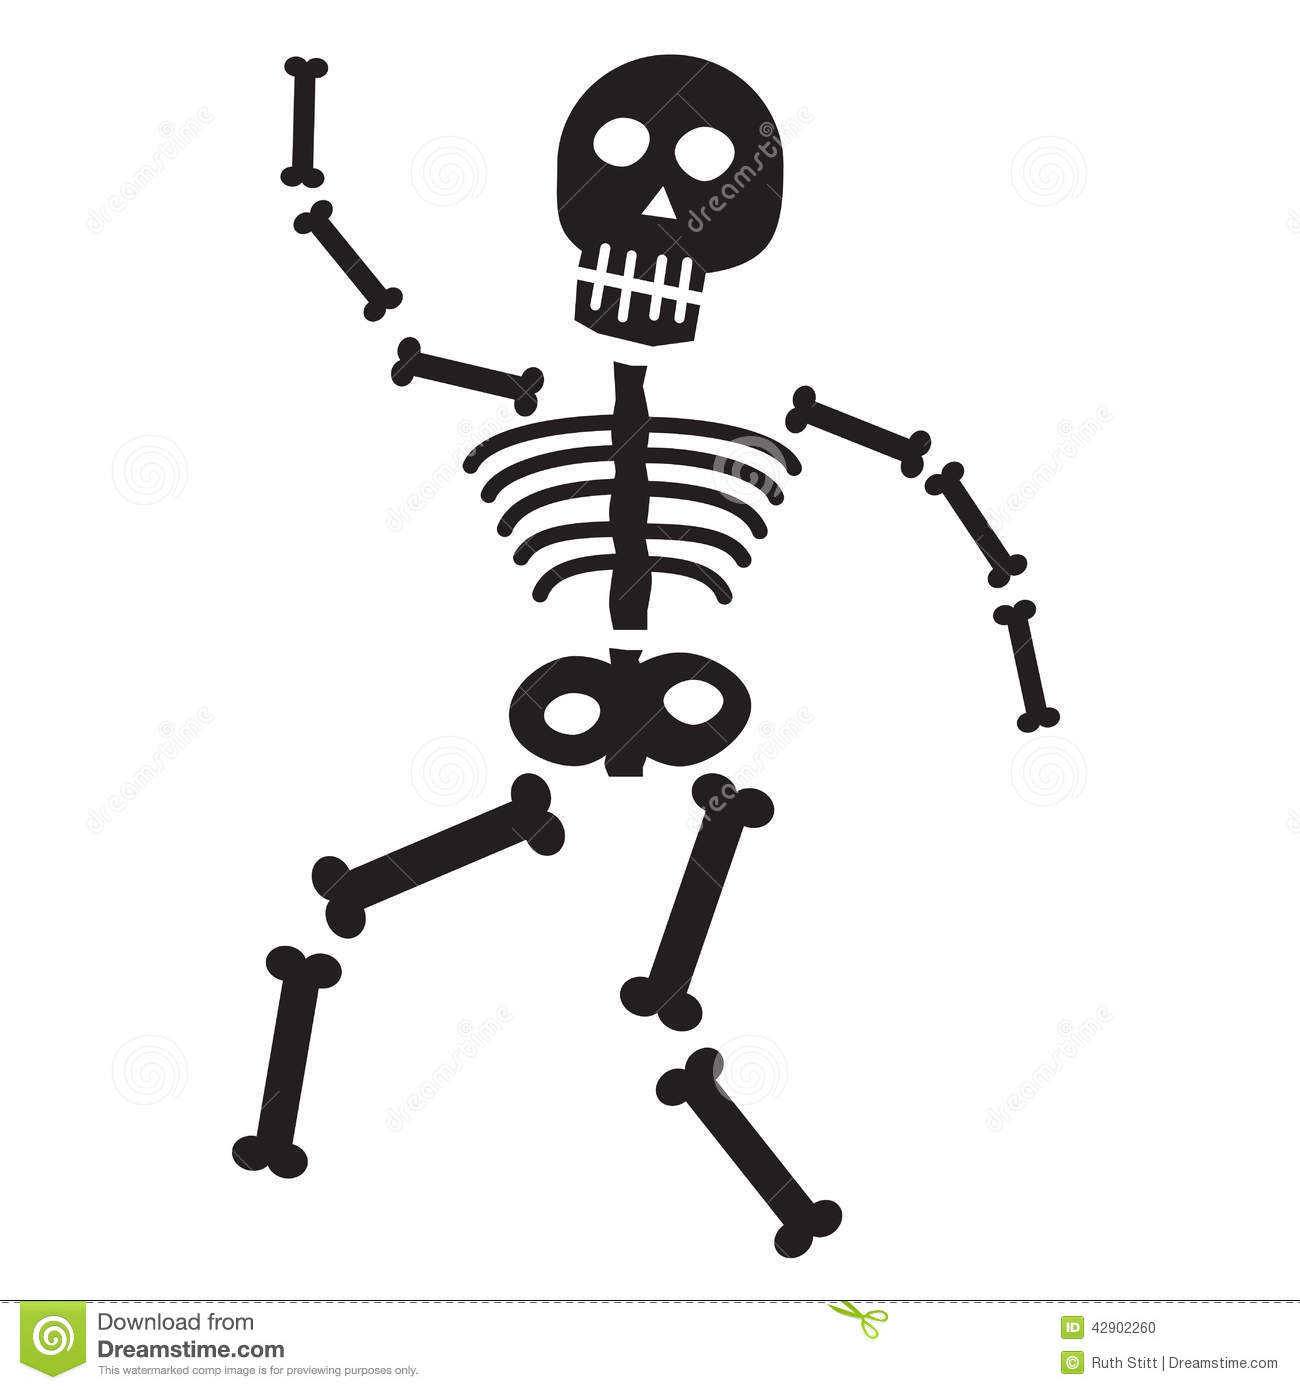 Retirement party thank you cards also Stock Illustration Halloween Skeleton Happy Holiday Bones Image42902260 as well HungryCaterpillarMathIdeas moreover Stock Photos Halloween Card Image15771443 together with Royalty Free Stock Images Halloween Theme Drawing 2 Image26459069. on scarecrow thank you cards